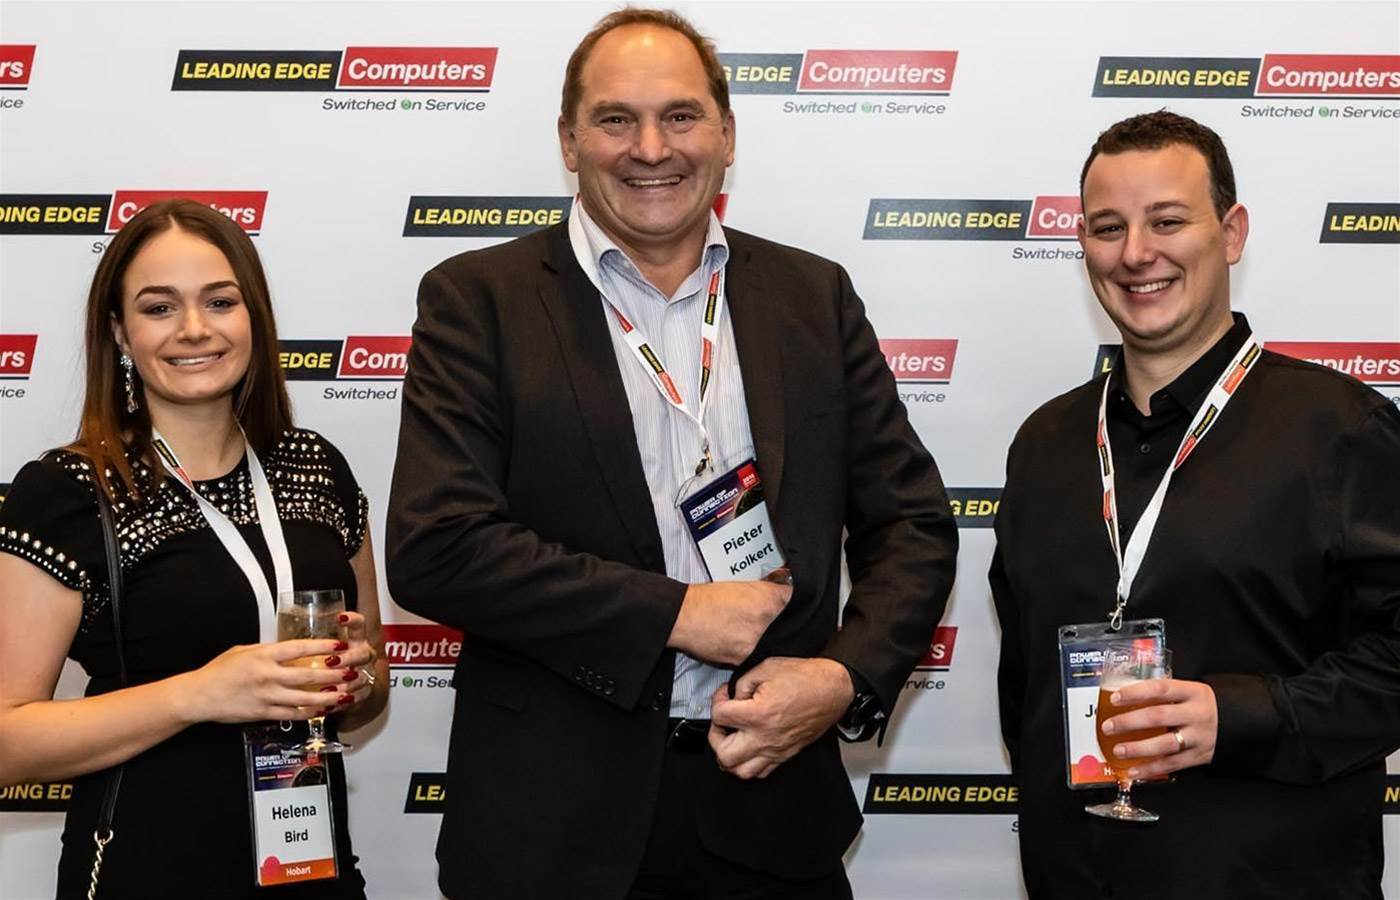 Resellers from around Australia converge for Leading Edge Computers conference